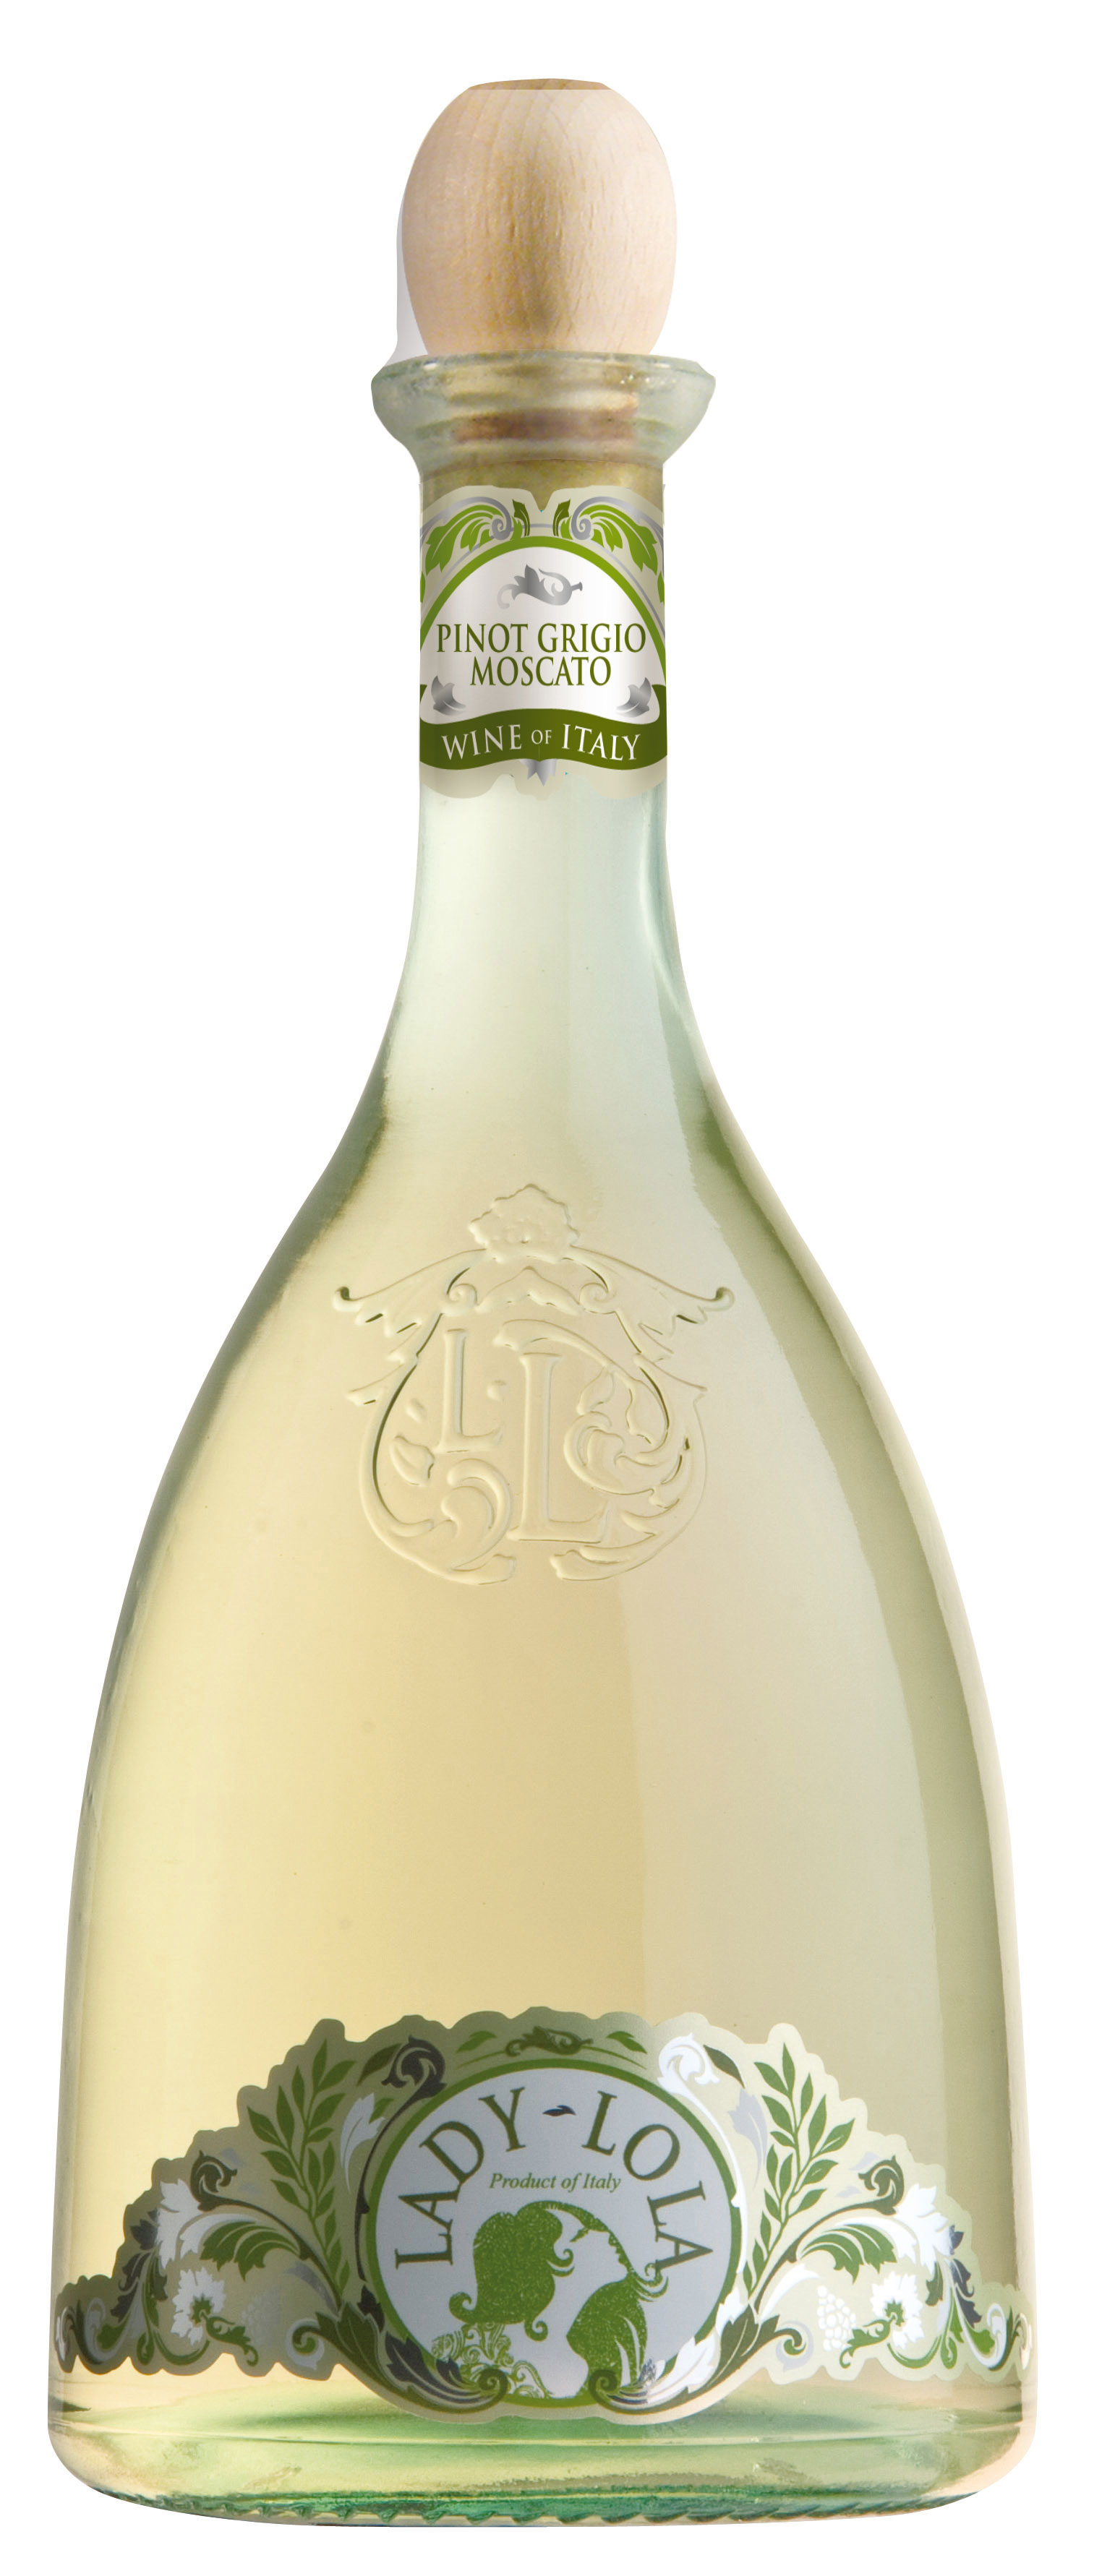 LADY LOLA PINOT GRIGIO for only 1259 in online liquor store